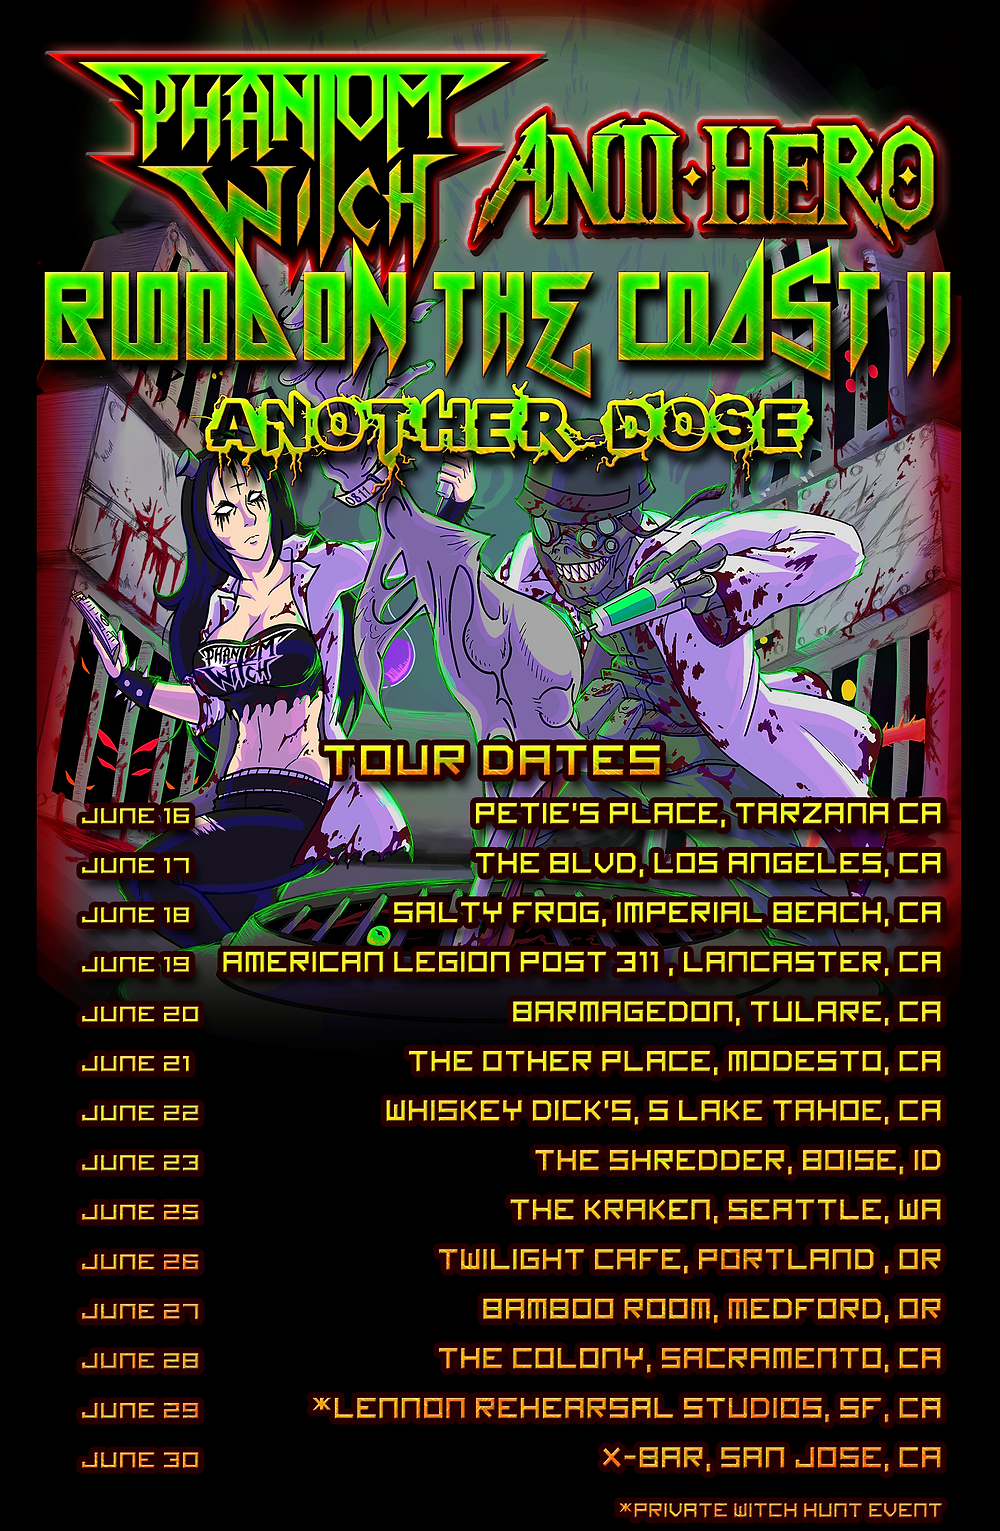 Blood On Coast II: Another Dose Tour Dates